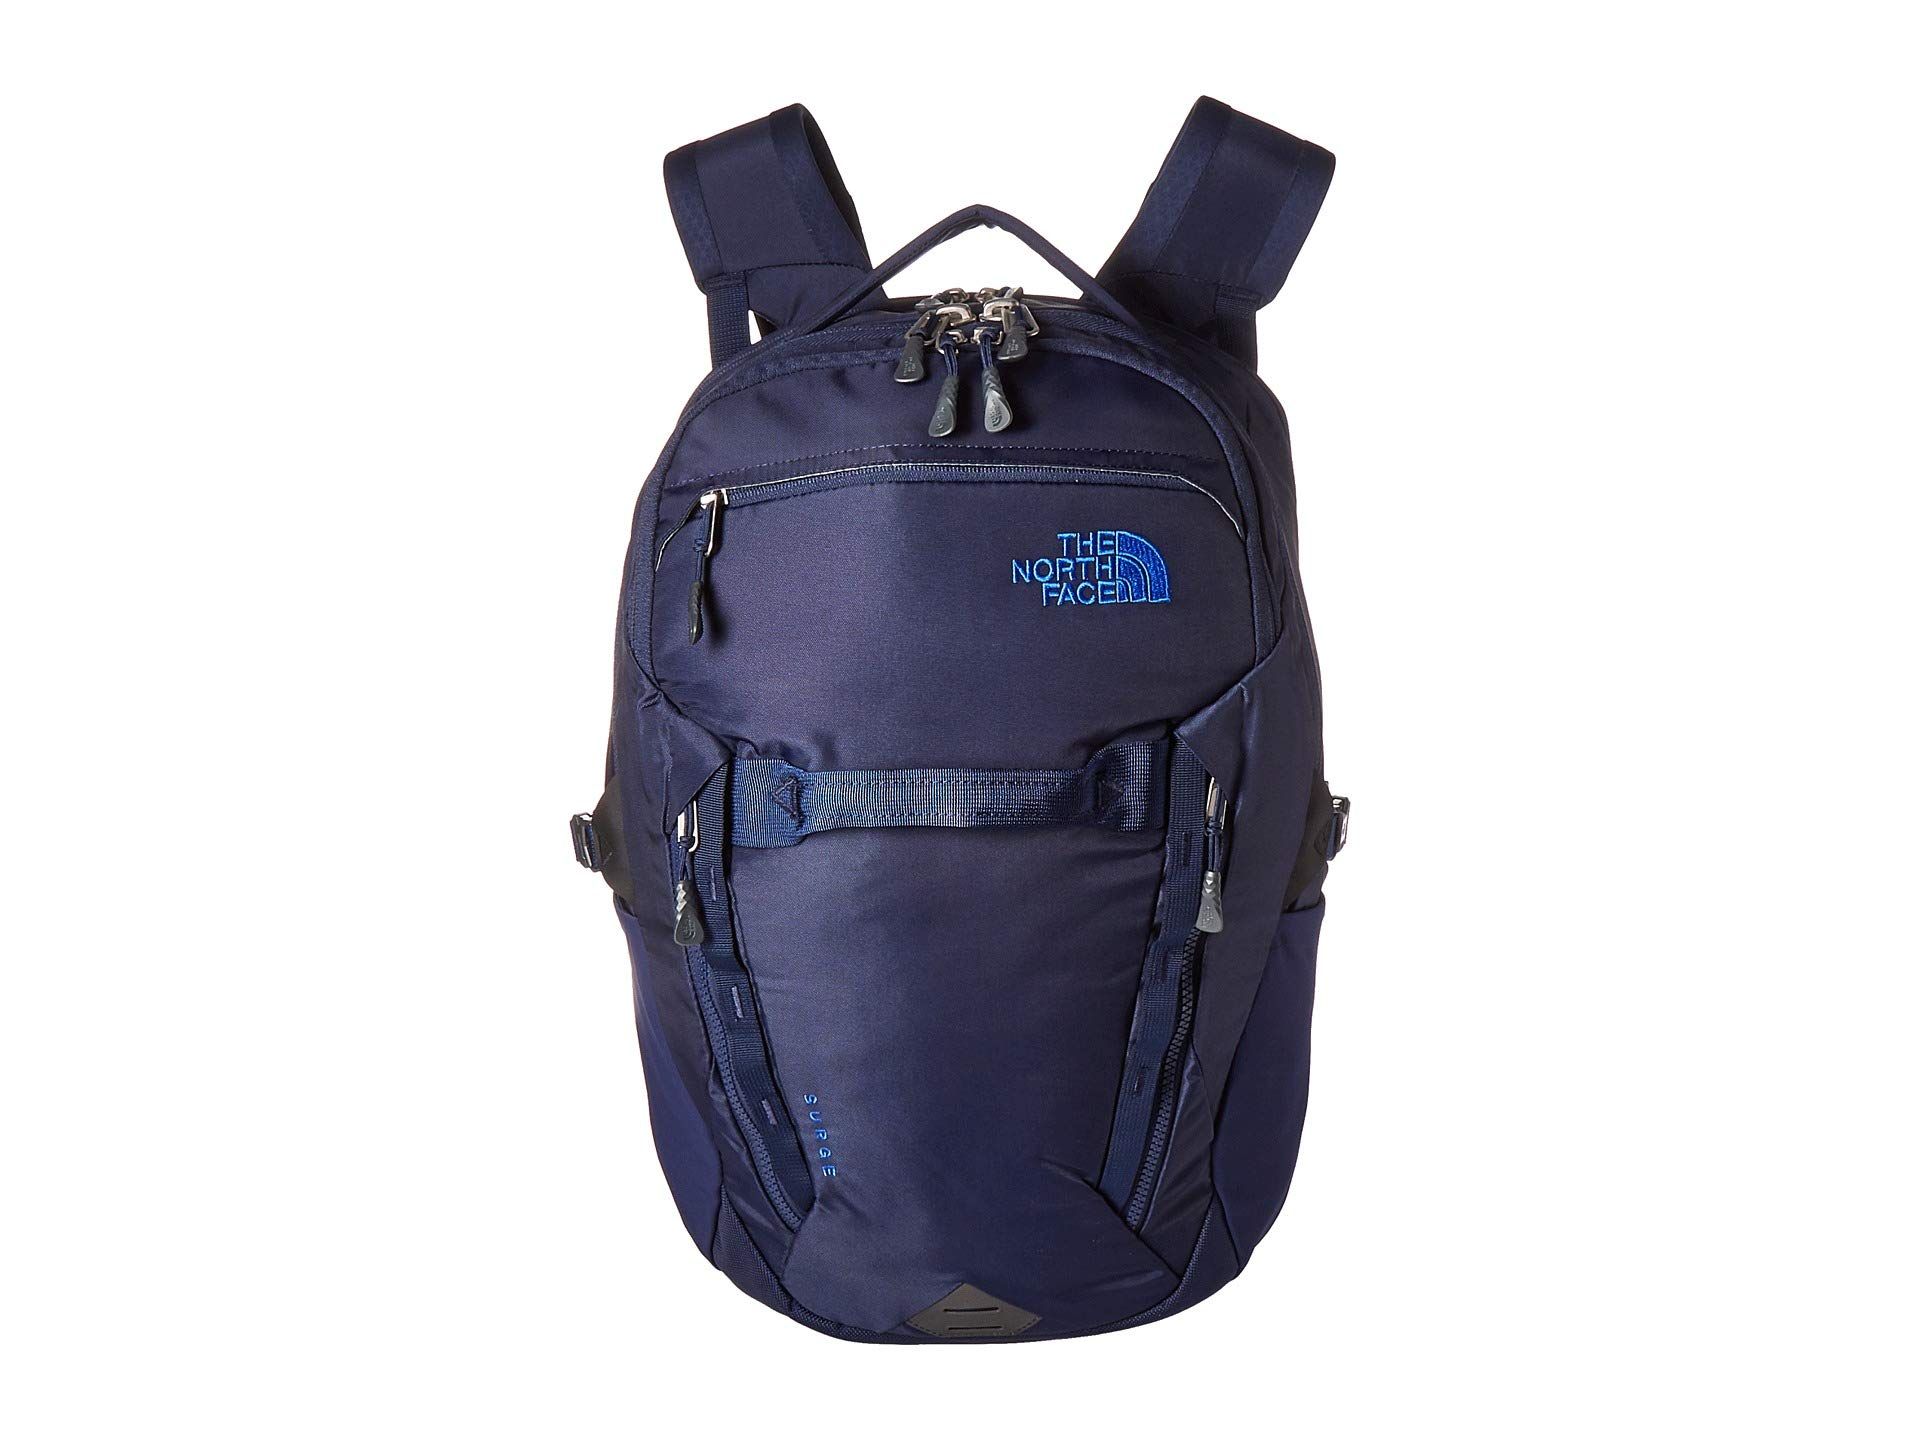 The North Face Surge, Montague Blue/TNF Blue, OS by The North Face